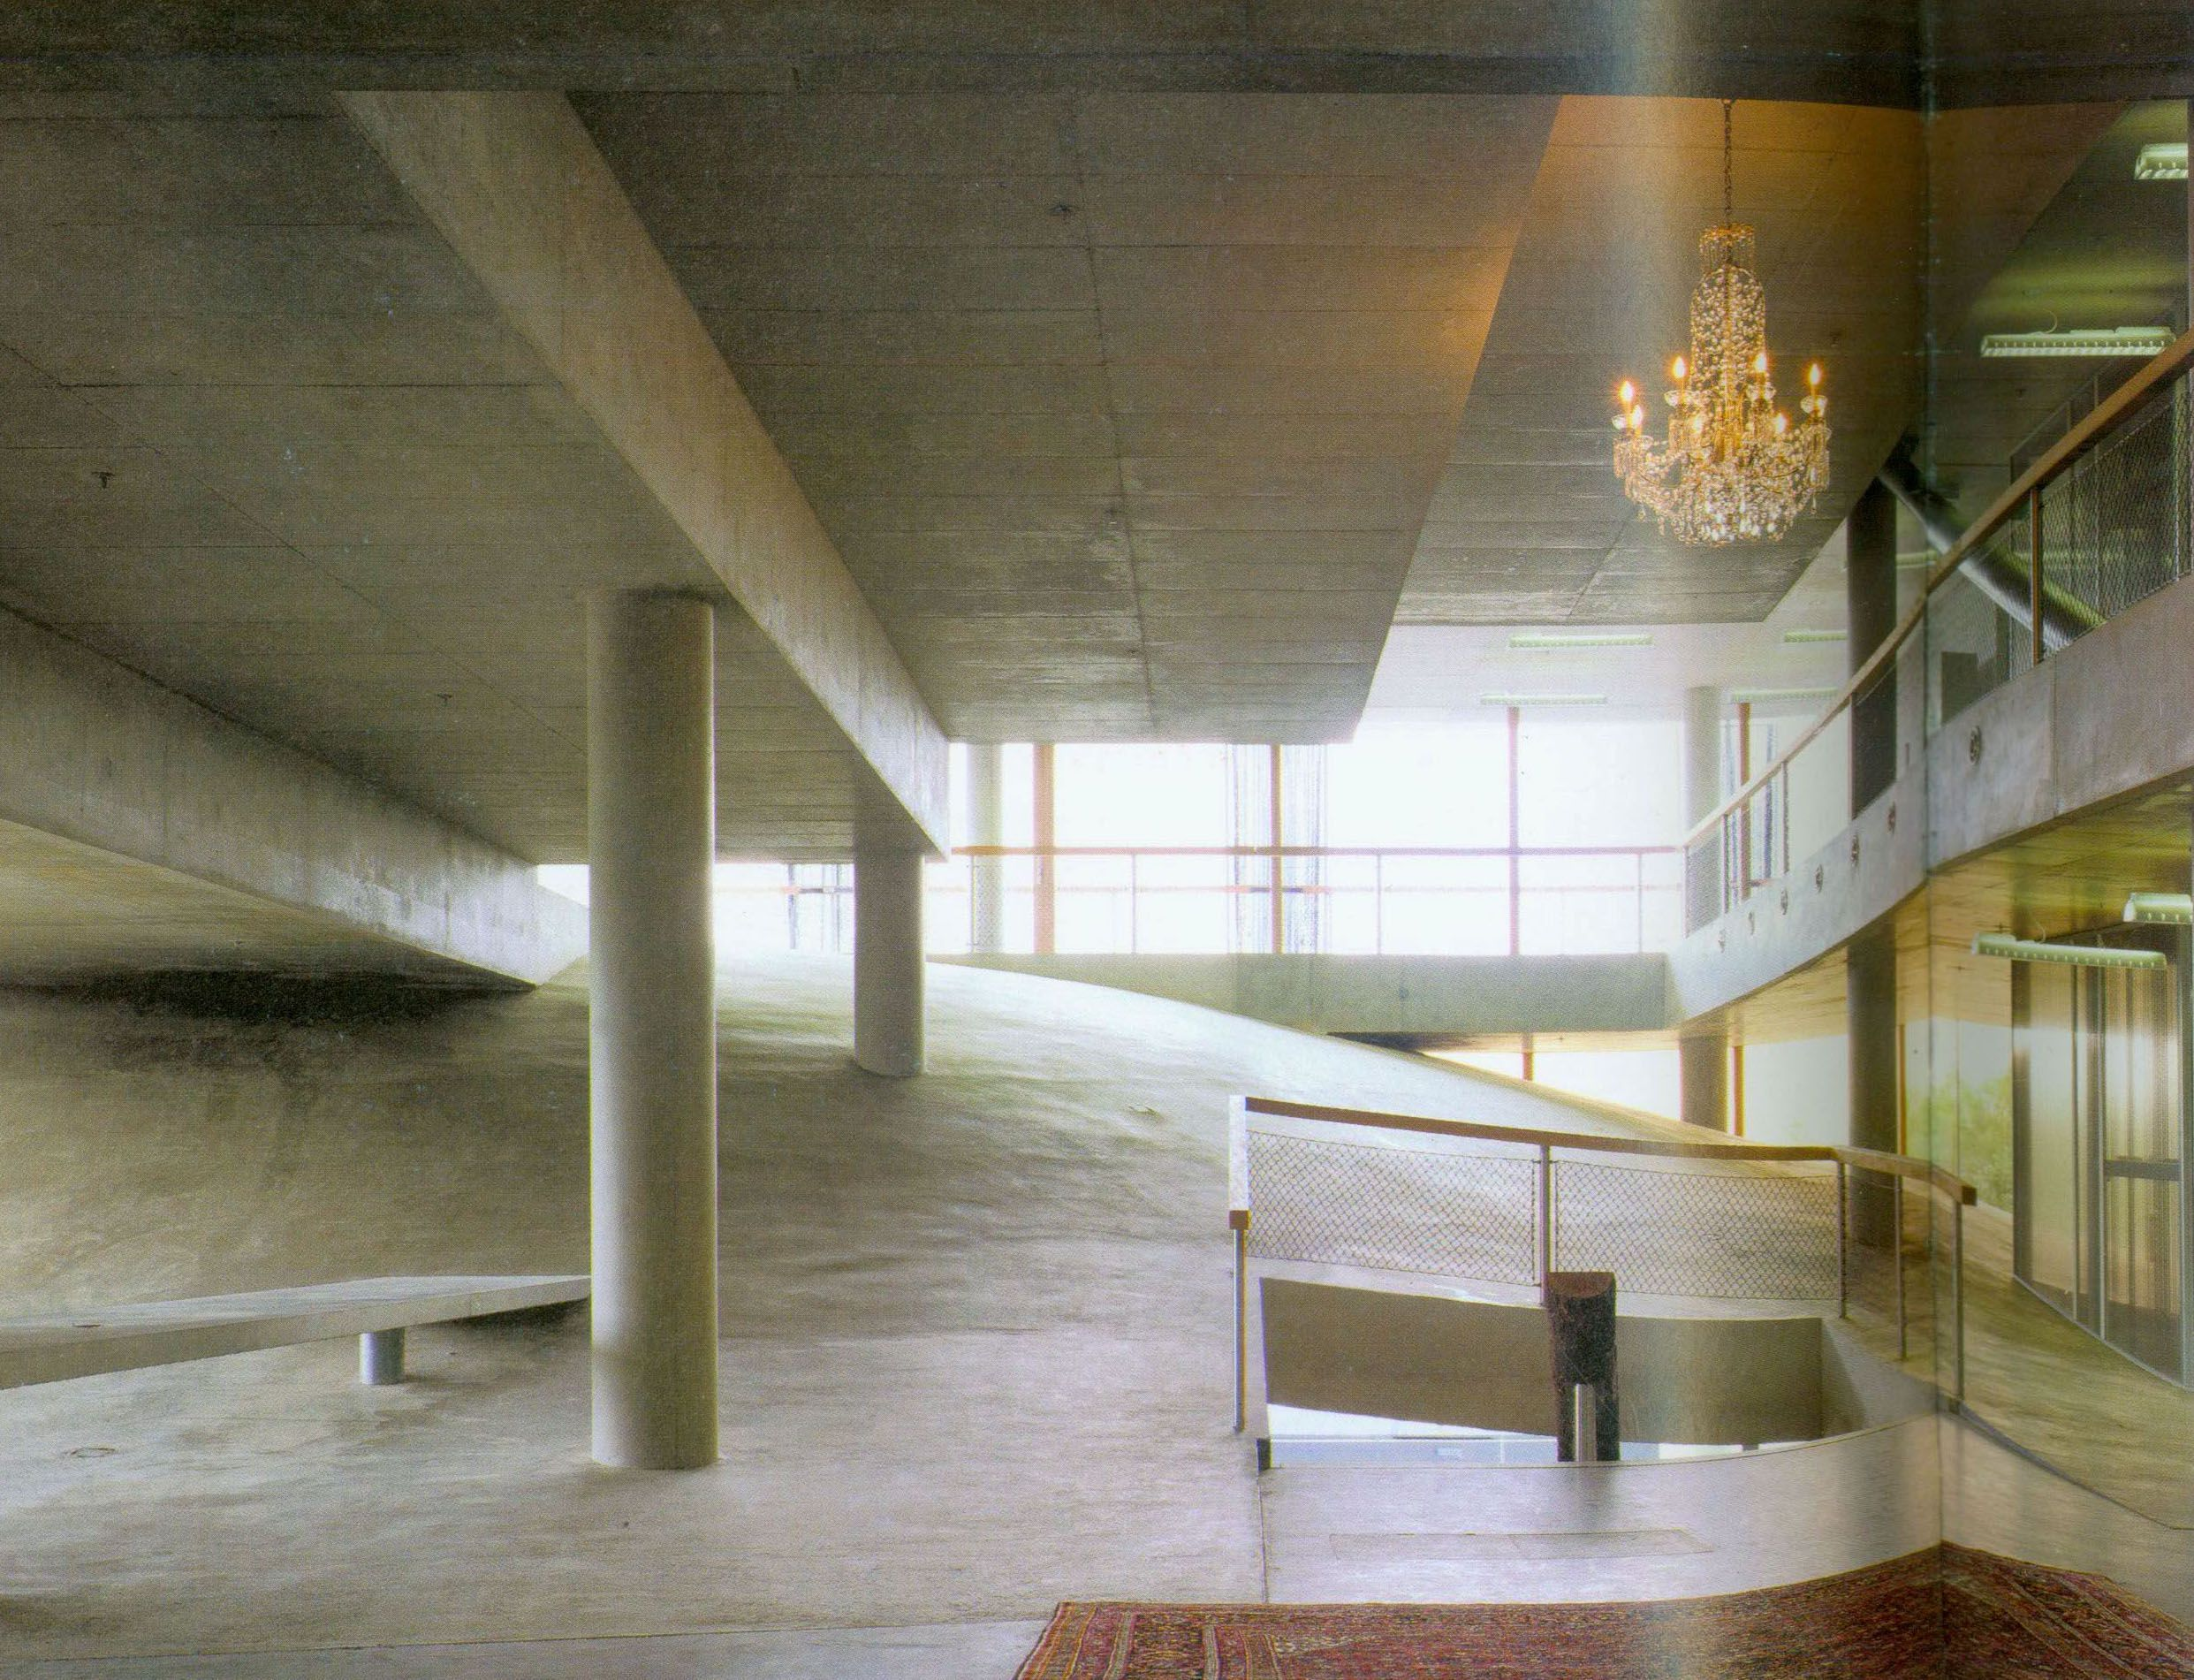 Rem koolhaas villa dall ava paris france 1991 atlas of - Interior Topography Materiality Of Concrete As A Semi Viscous Solid